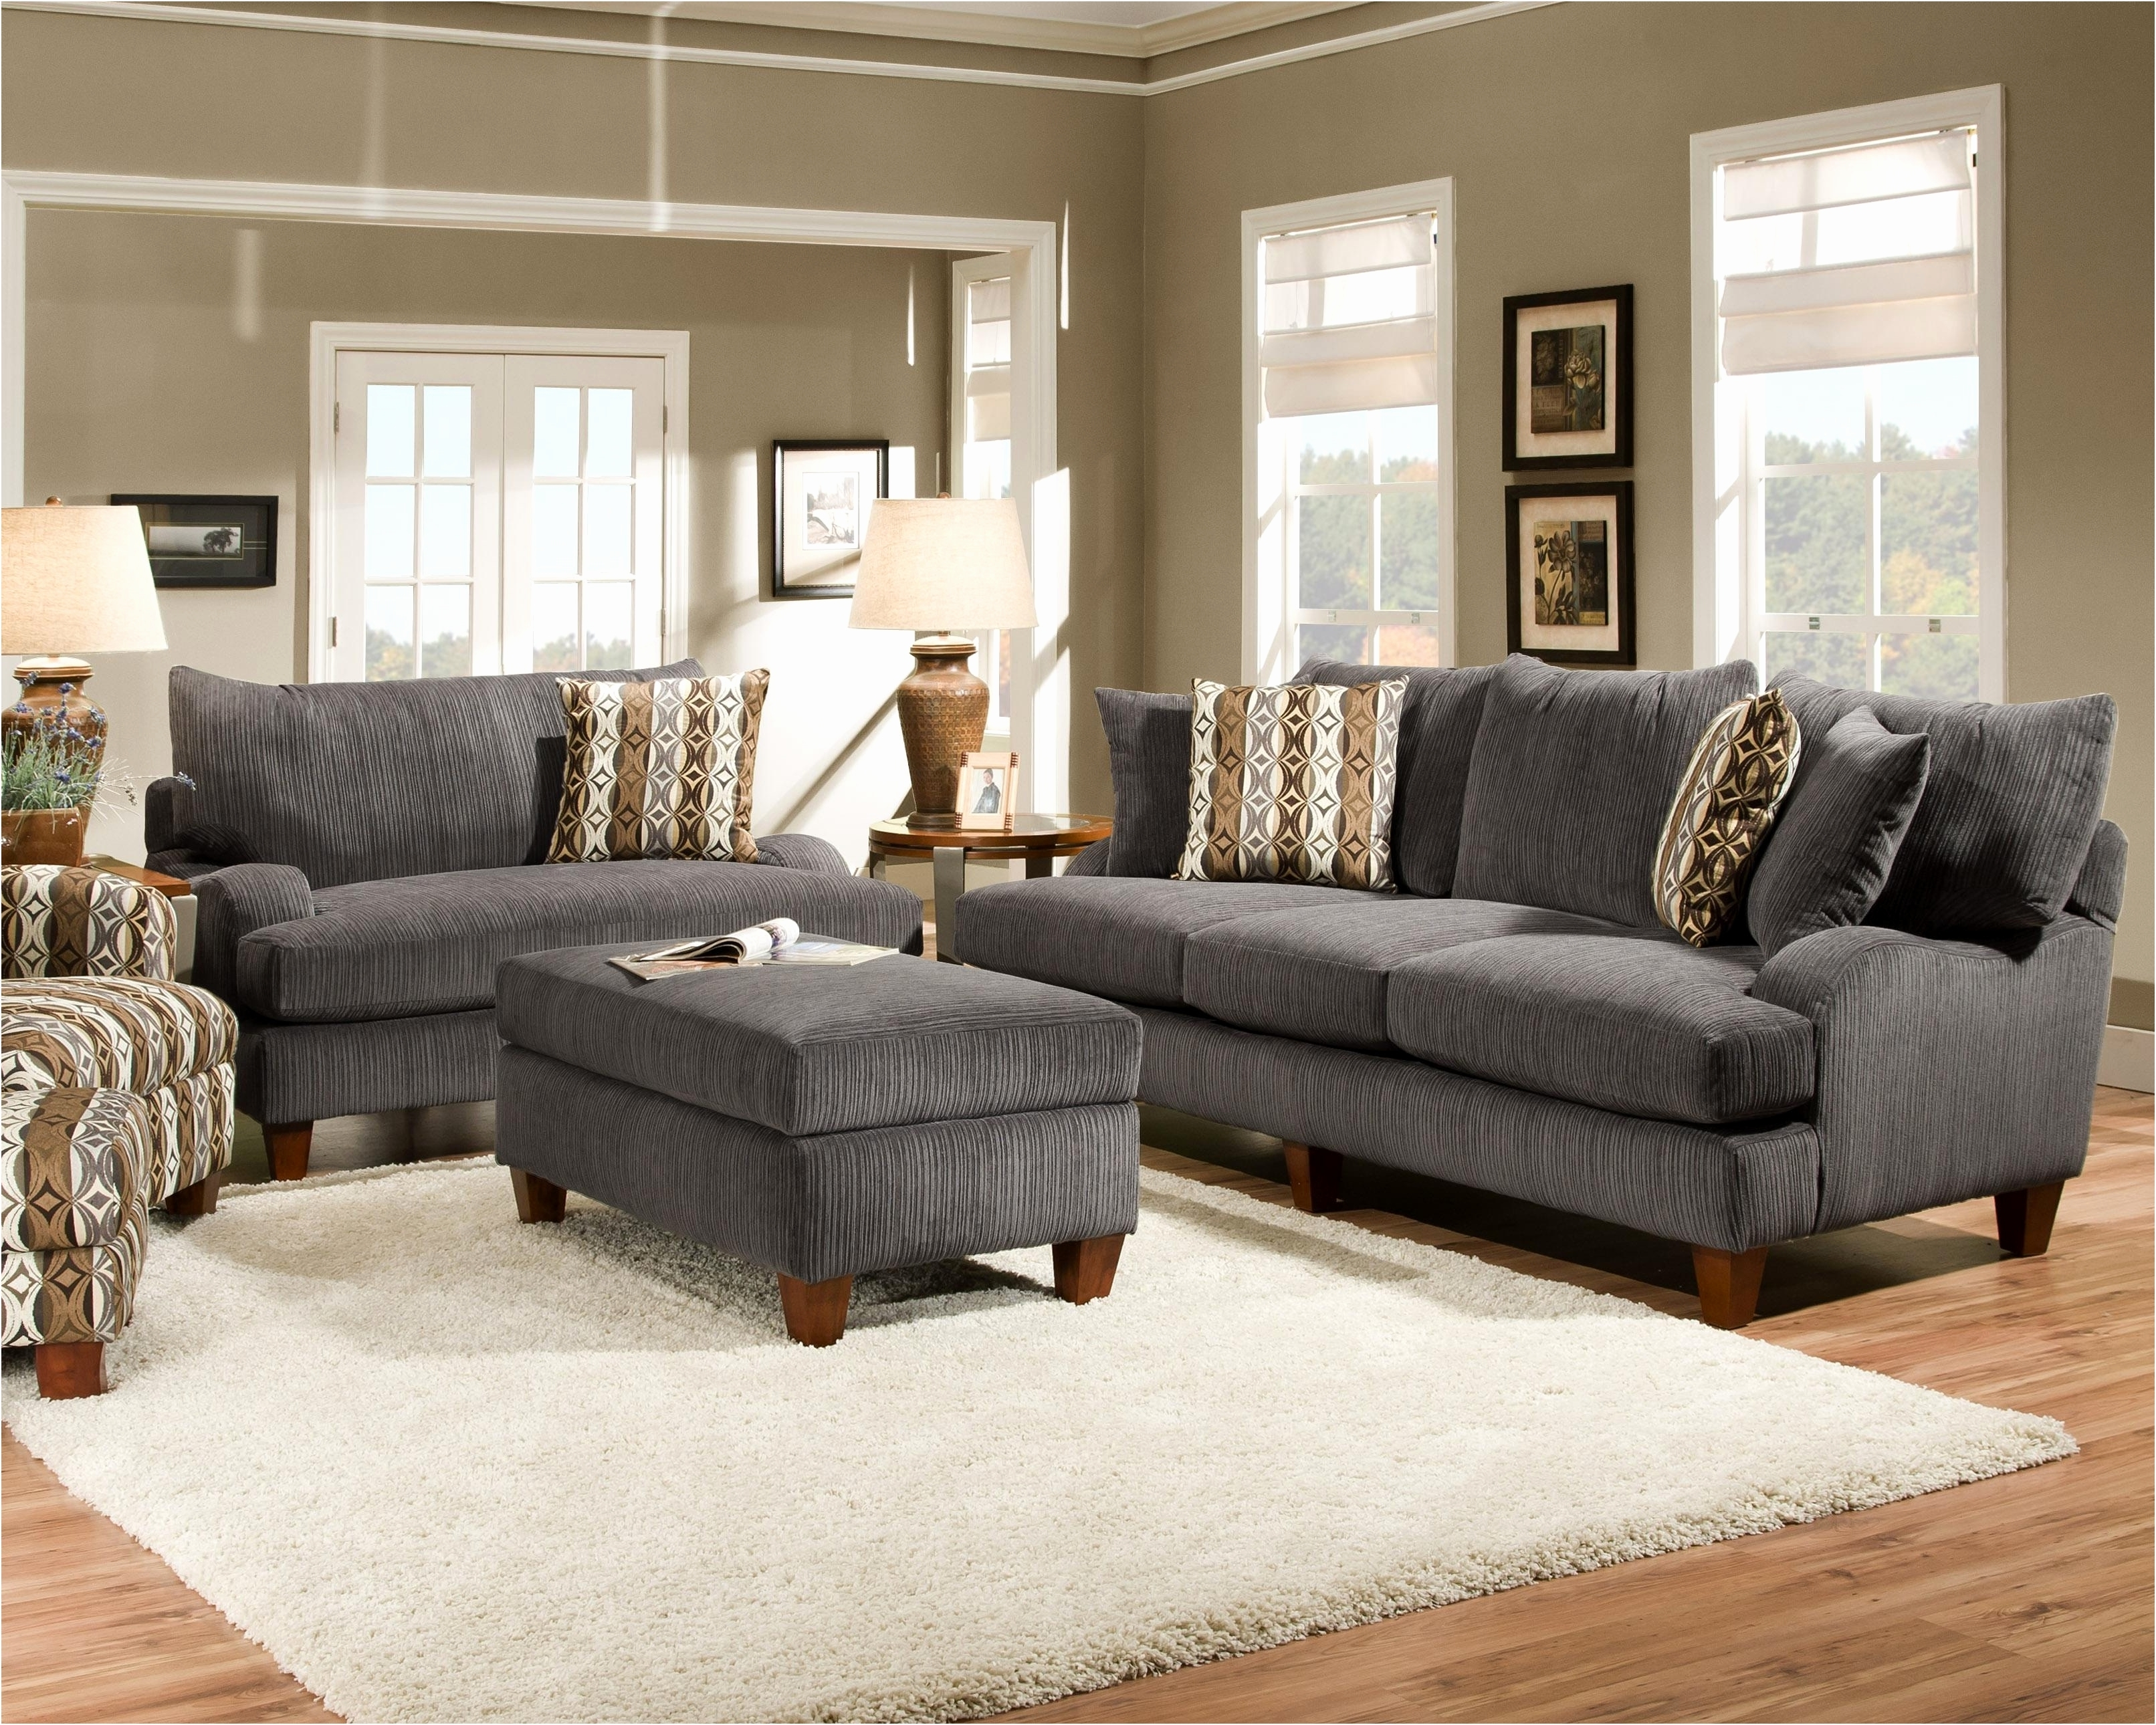 Charcoal Grey Sofas In Current Grey Couch Living Room Elegant Dark Gray Couch Living Room Ideas (View 3 of 15)